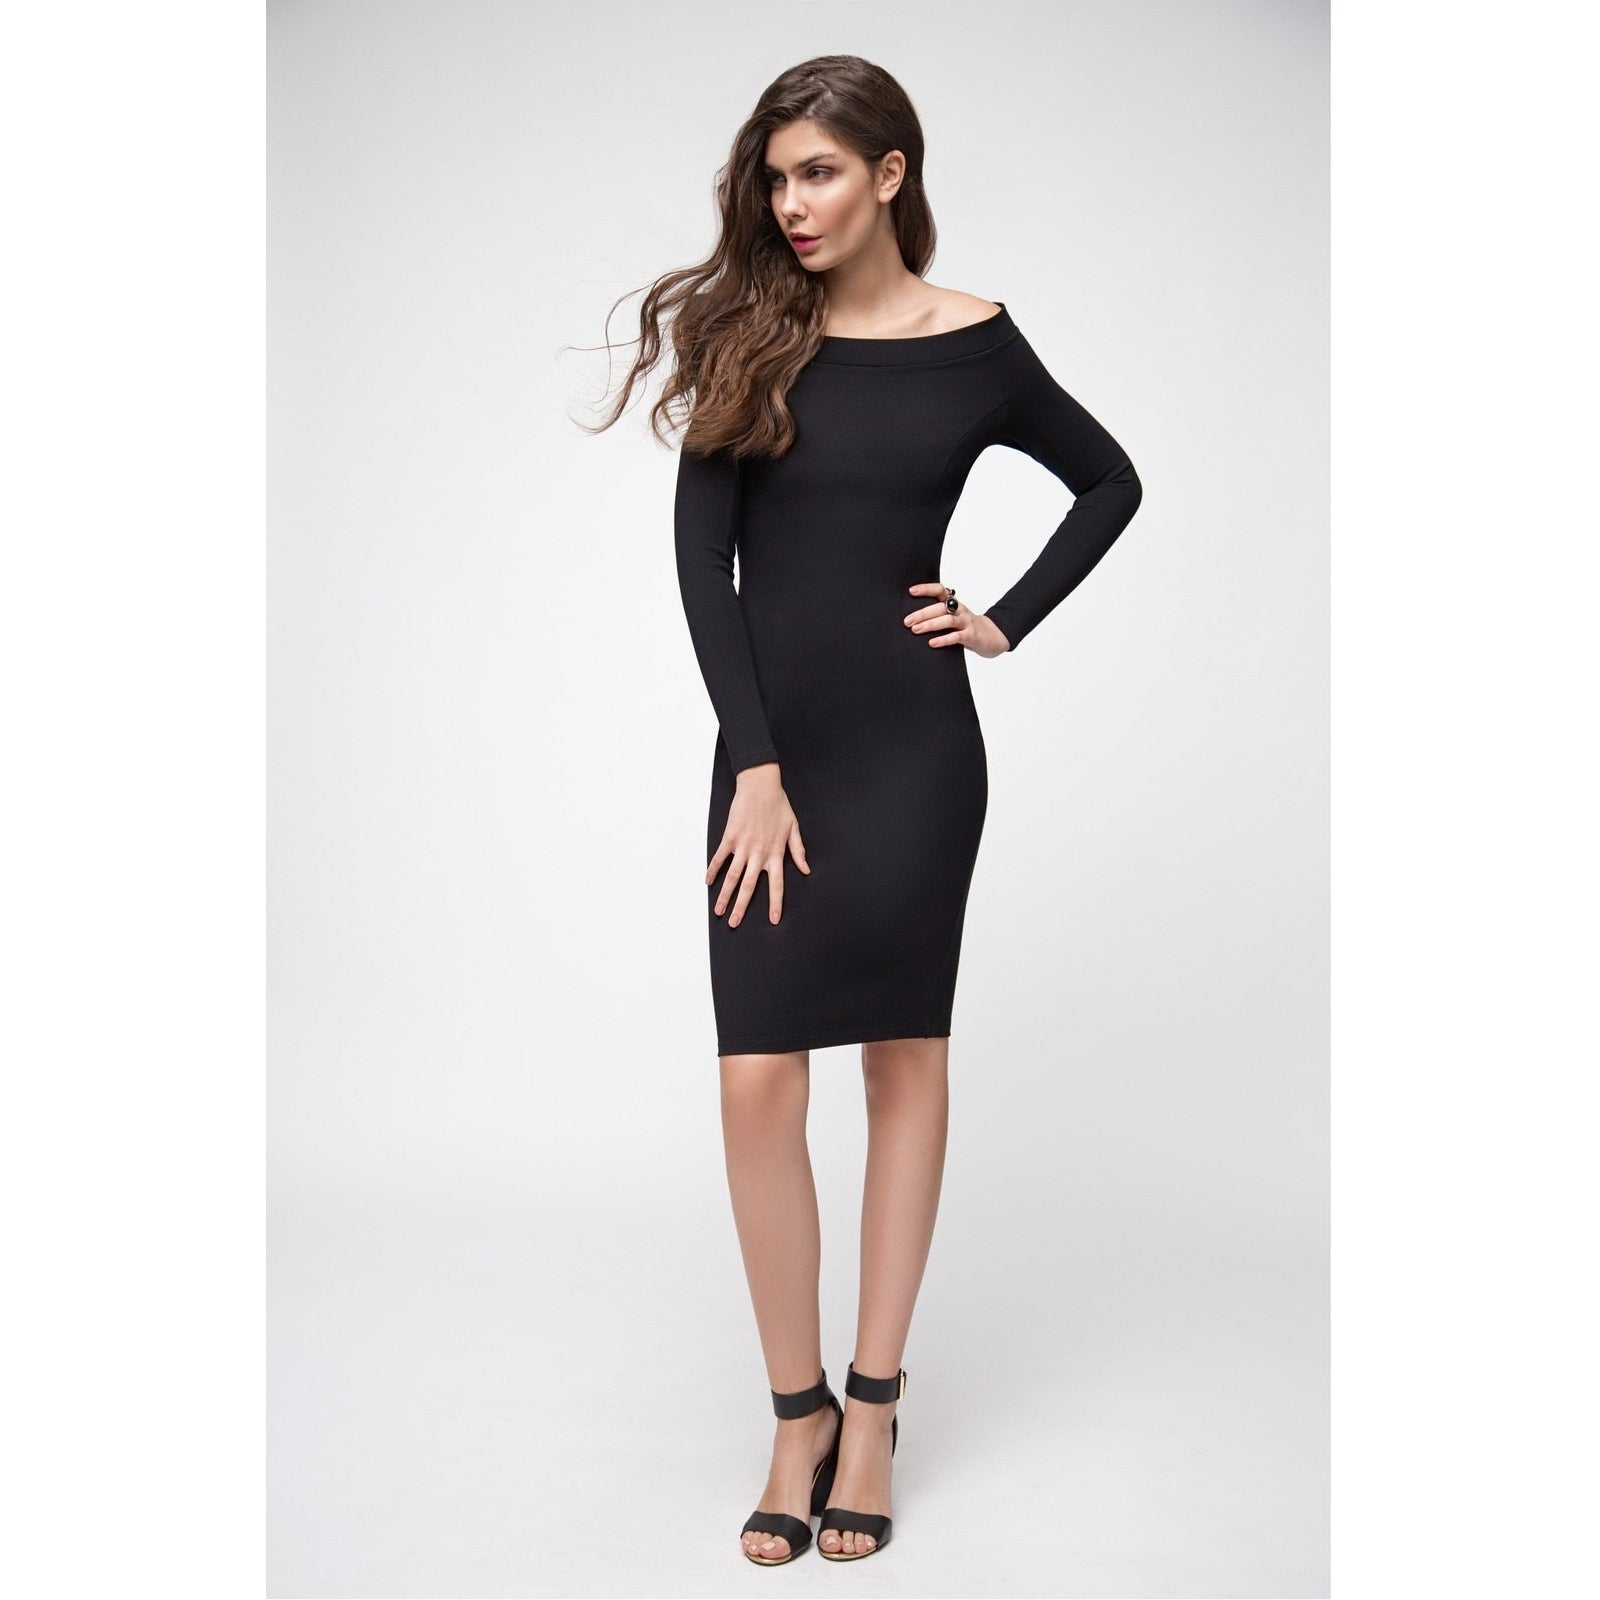 Black Cold Shoulders Bodycon Dress The Way I Feel-OVER THE SEA-HOUSE of BOTTA